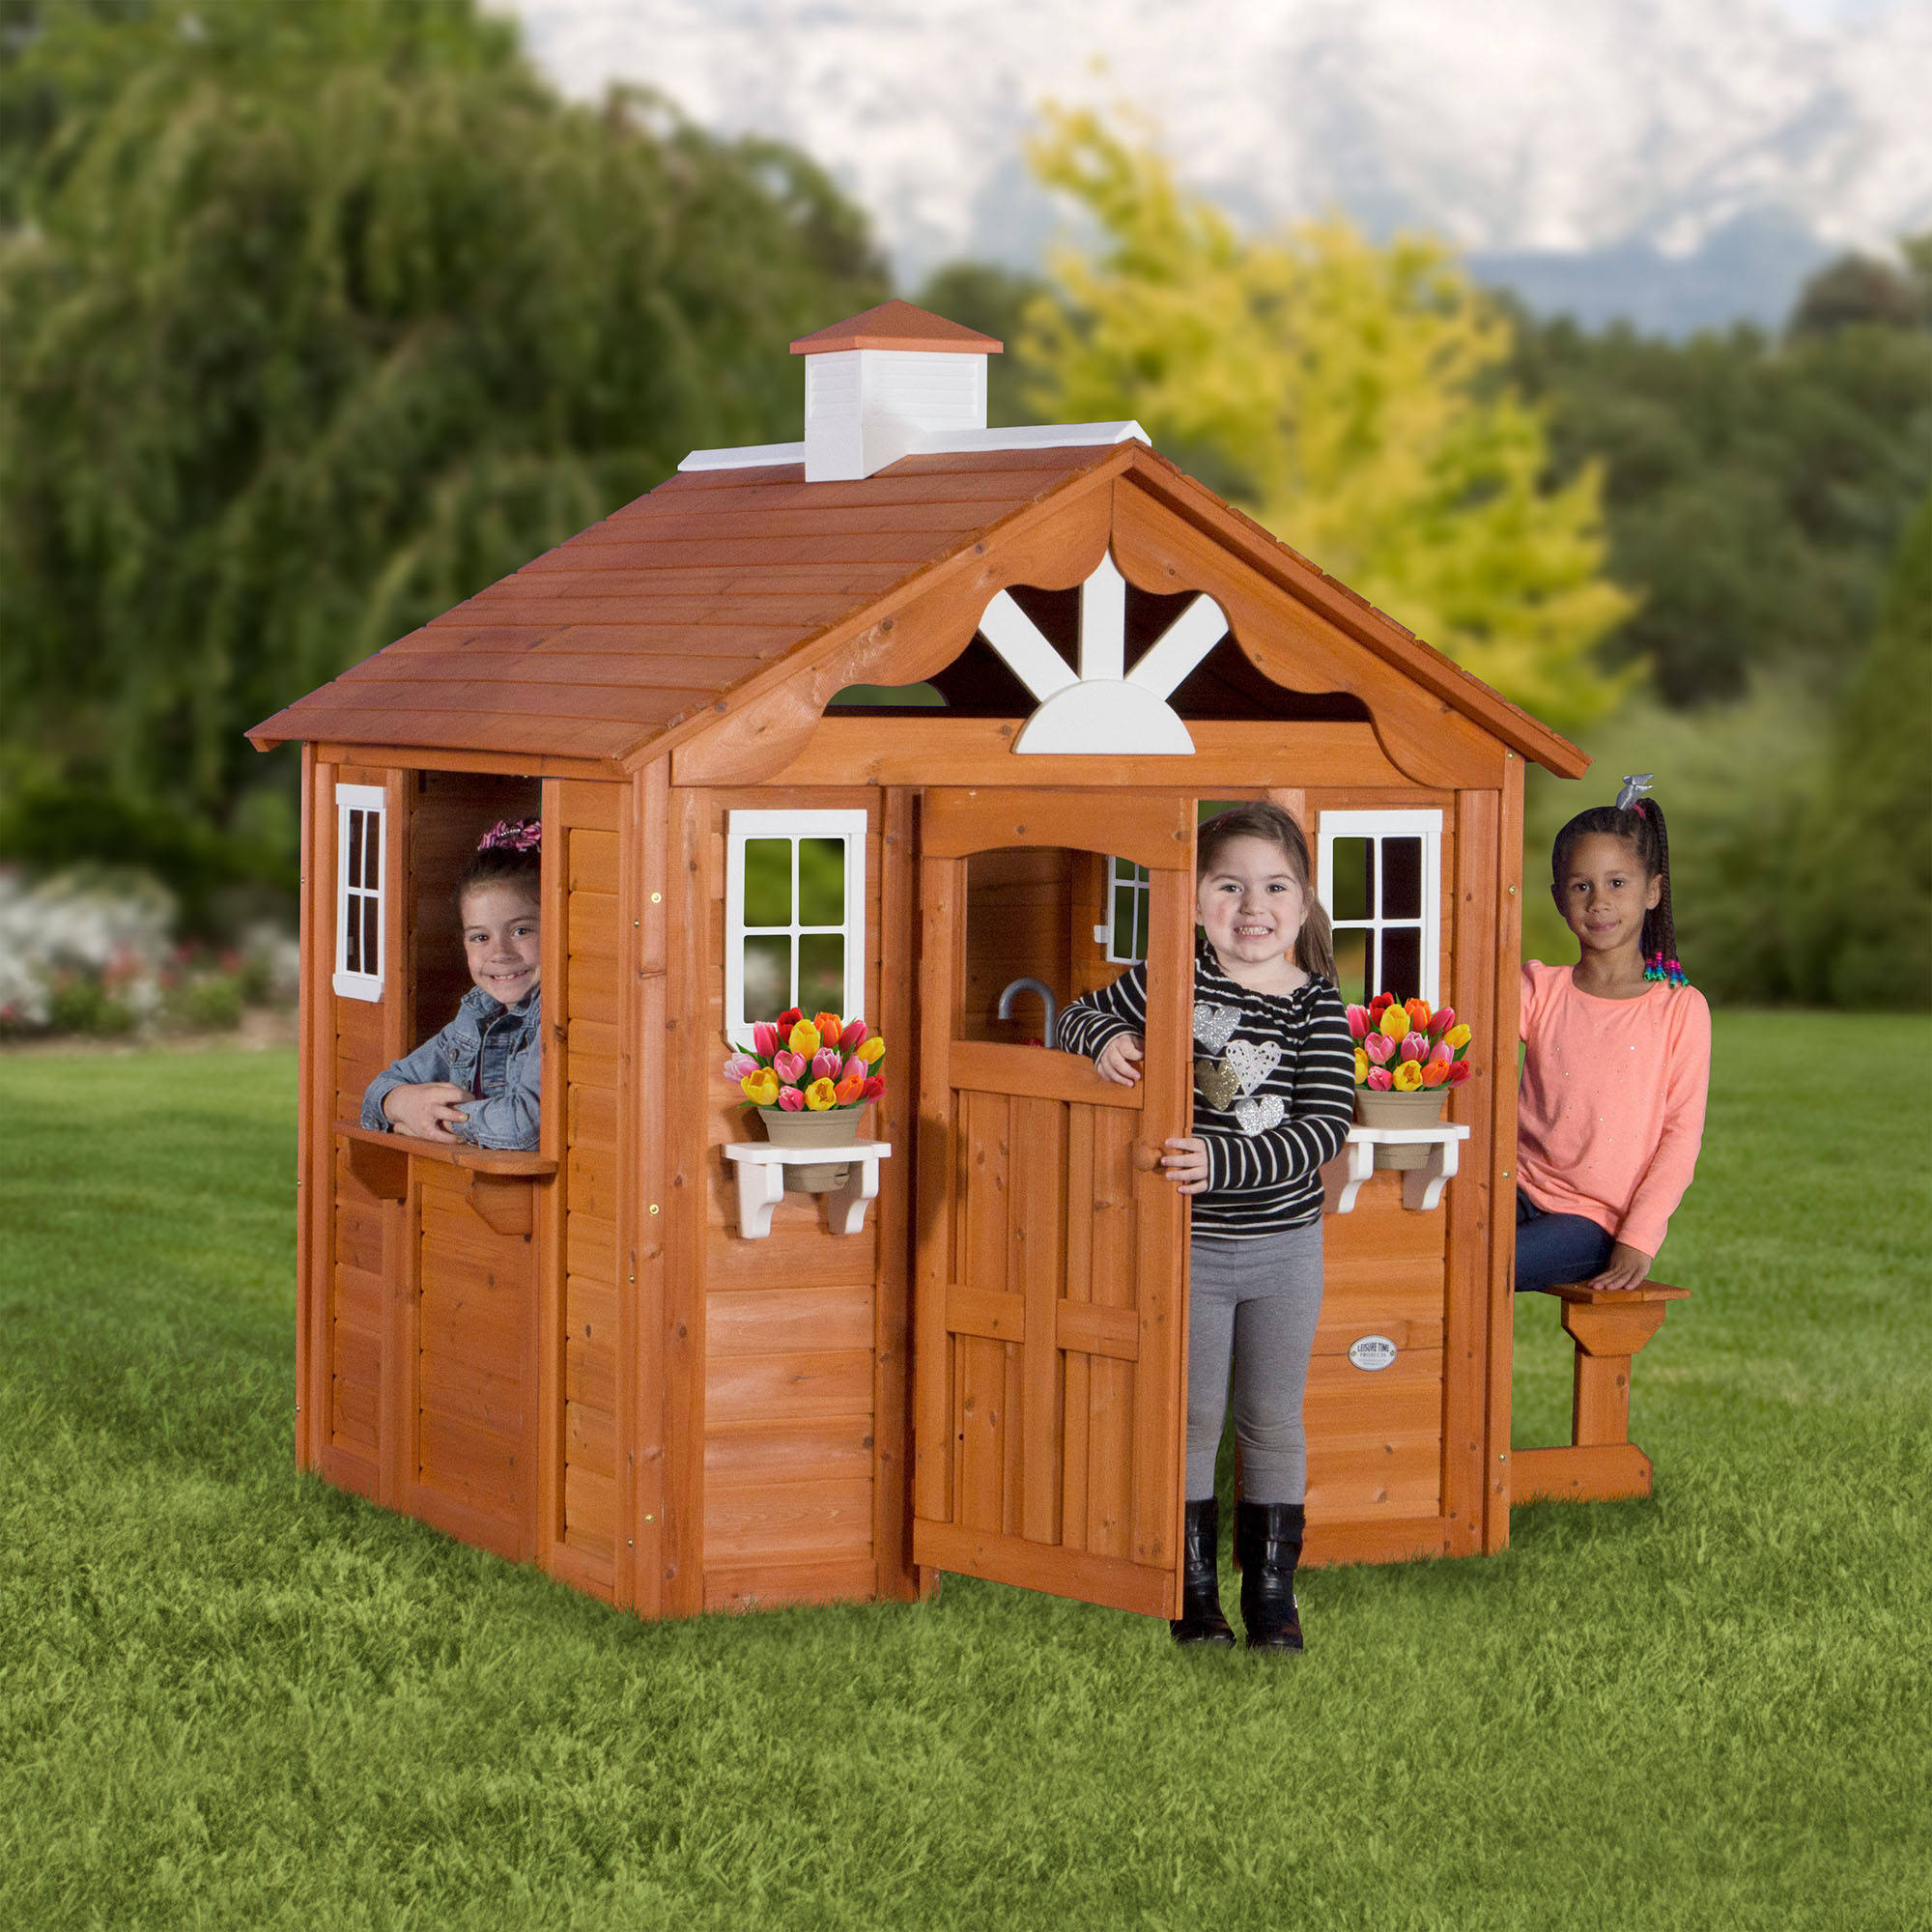 playhouse backyard discovery summer cottage wooden cedar outdoor kids fun new ebay. Black Bedroom Furniture Sets. Home Design Ideas